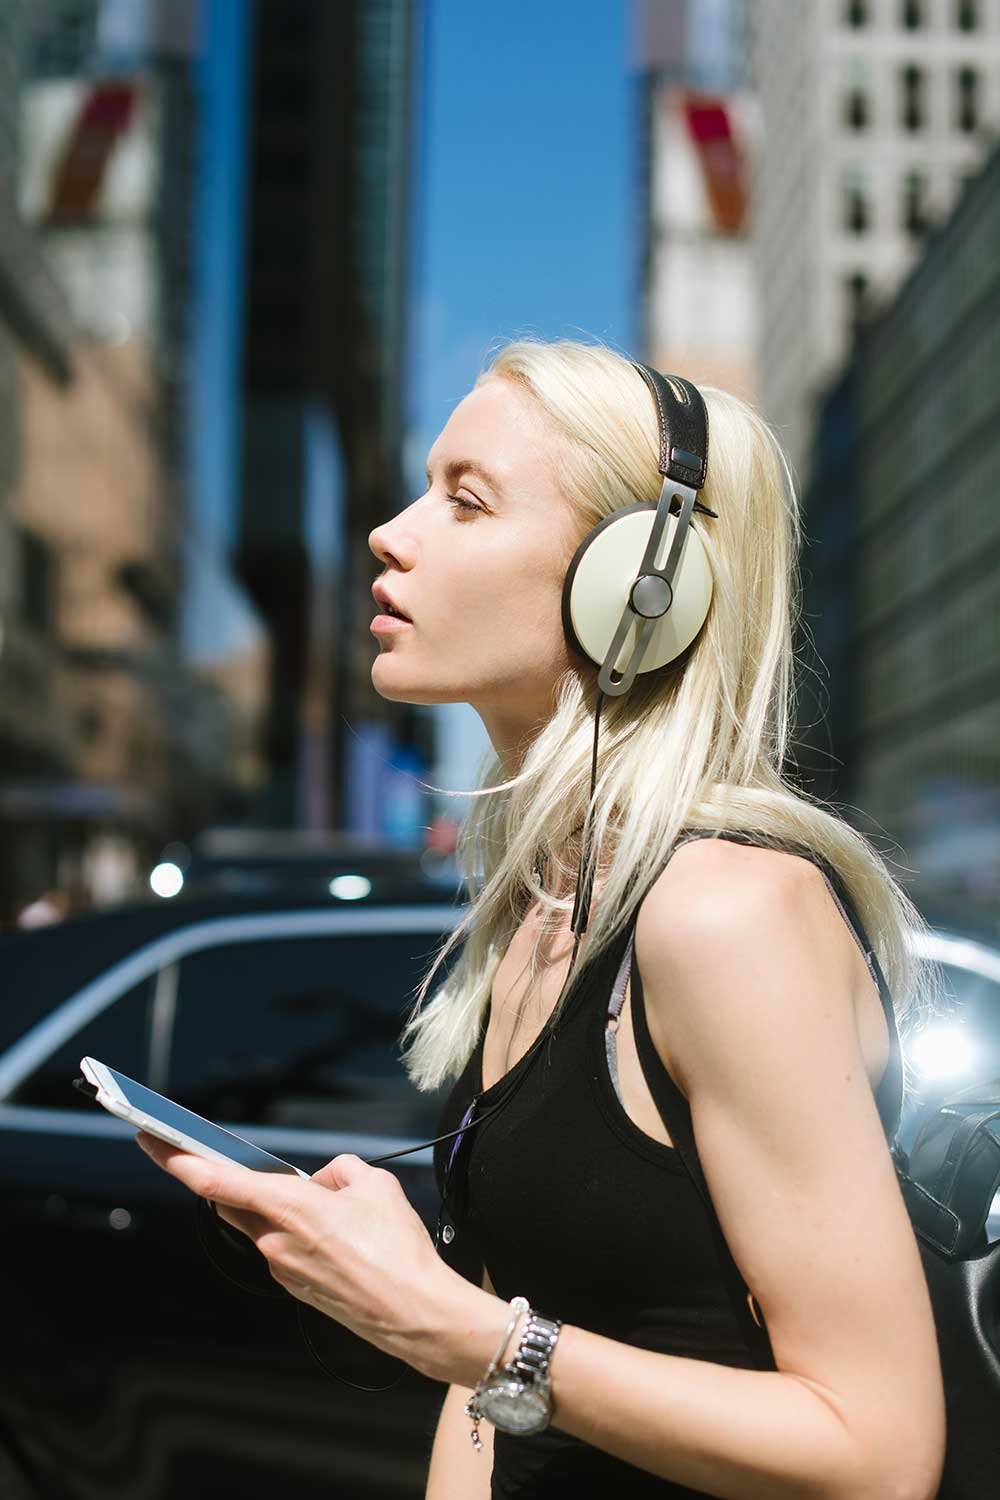 Woman walking down the city streets listening to music on her smartphone via headphones